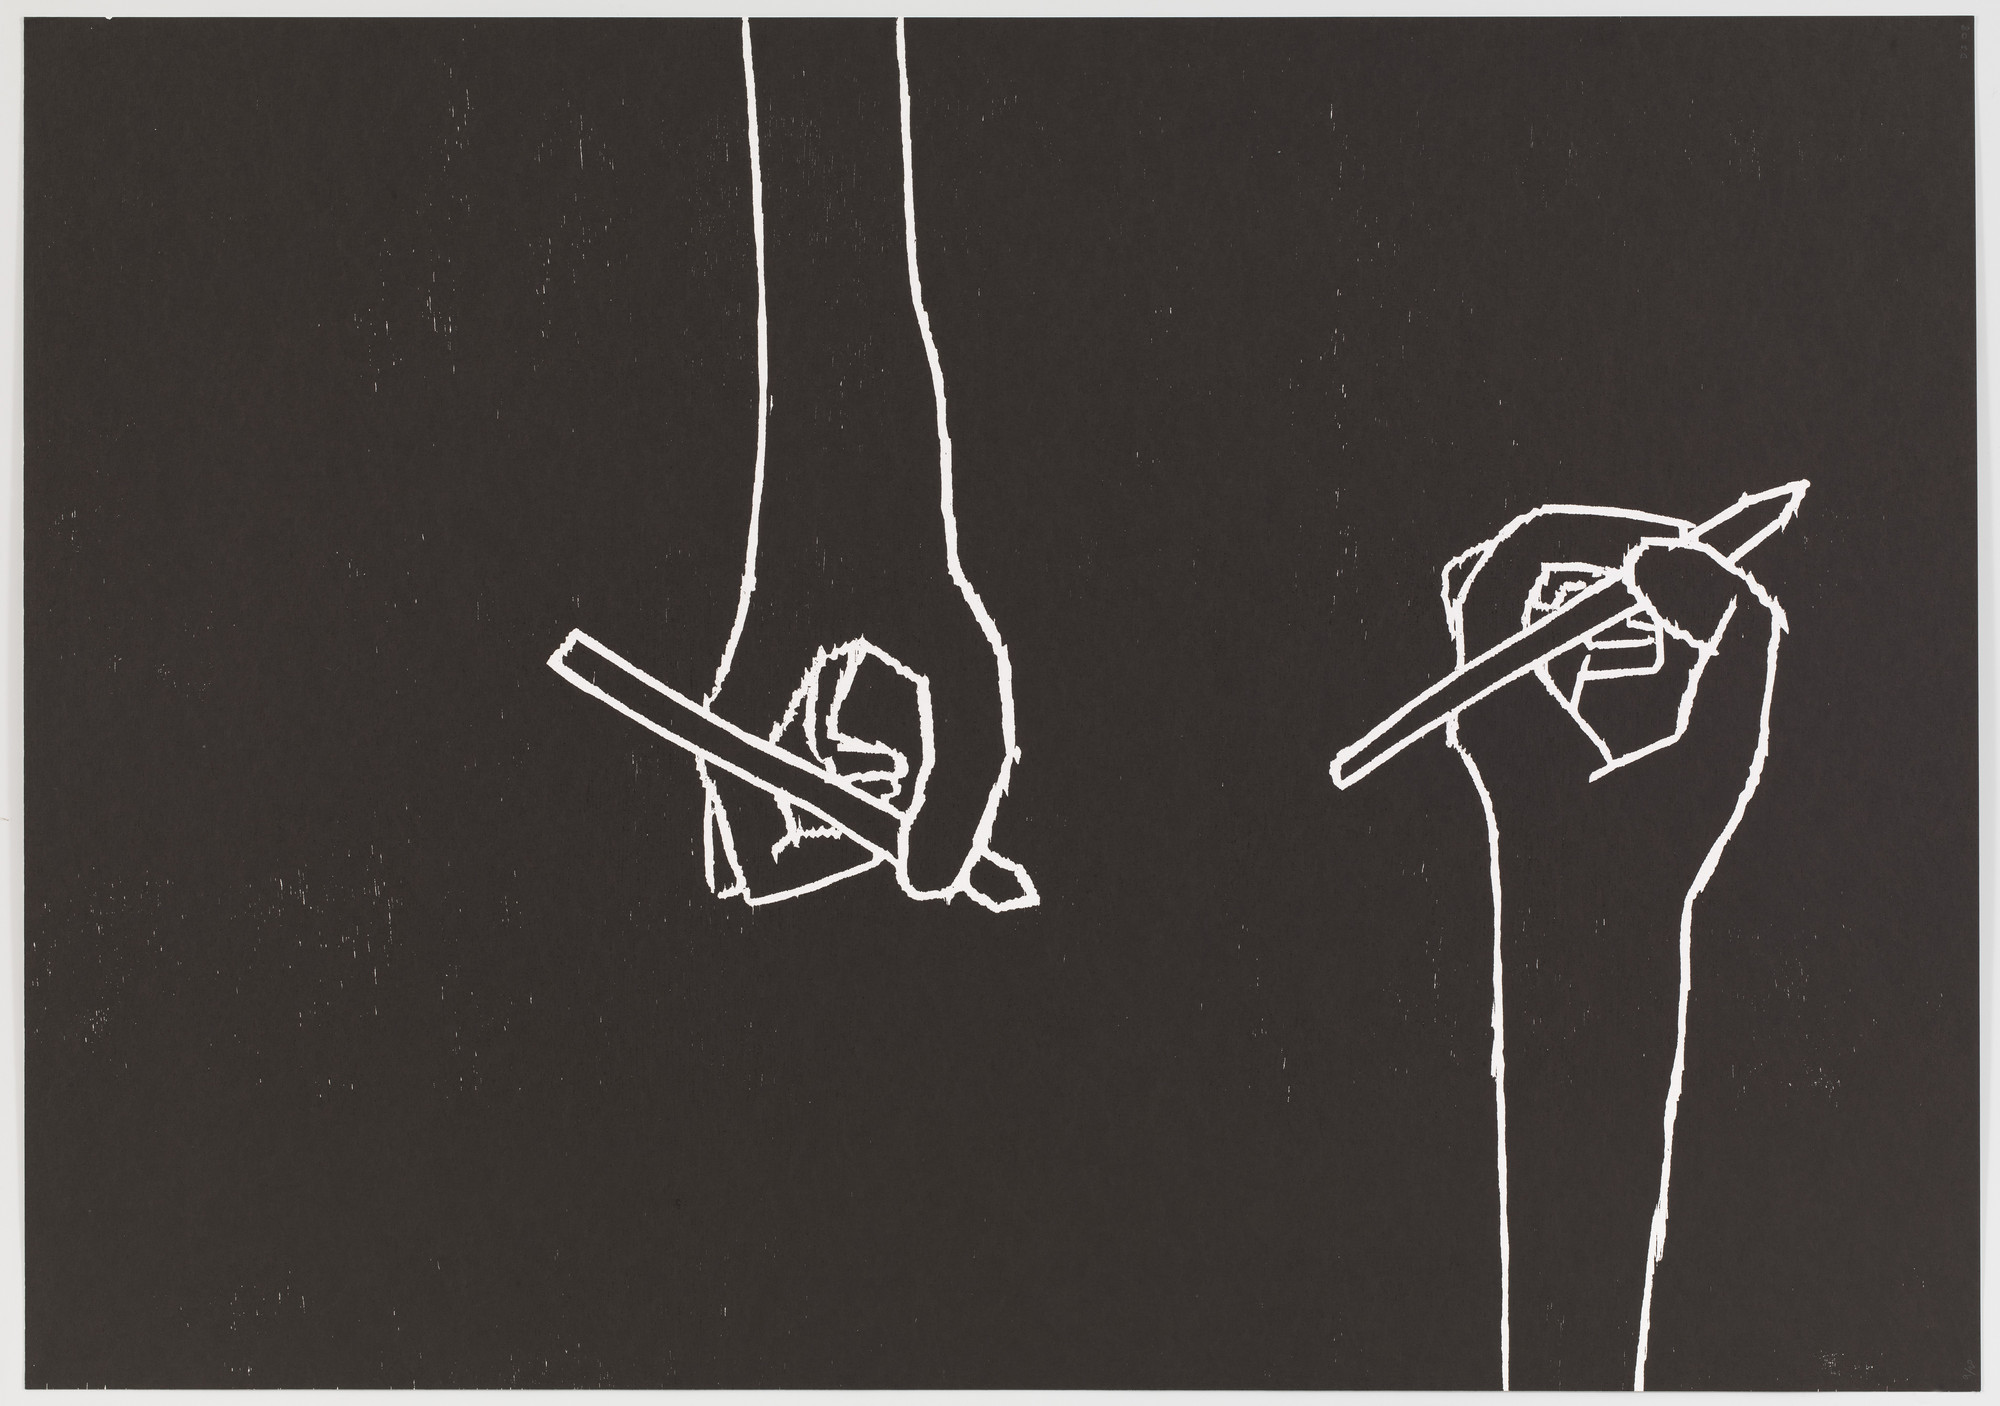 David Shrigley. Untitled (Hands writing) from an untitled portfolio. 2008